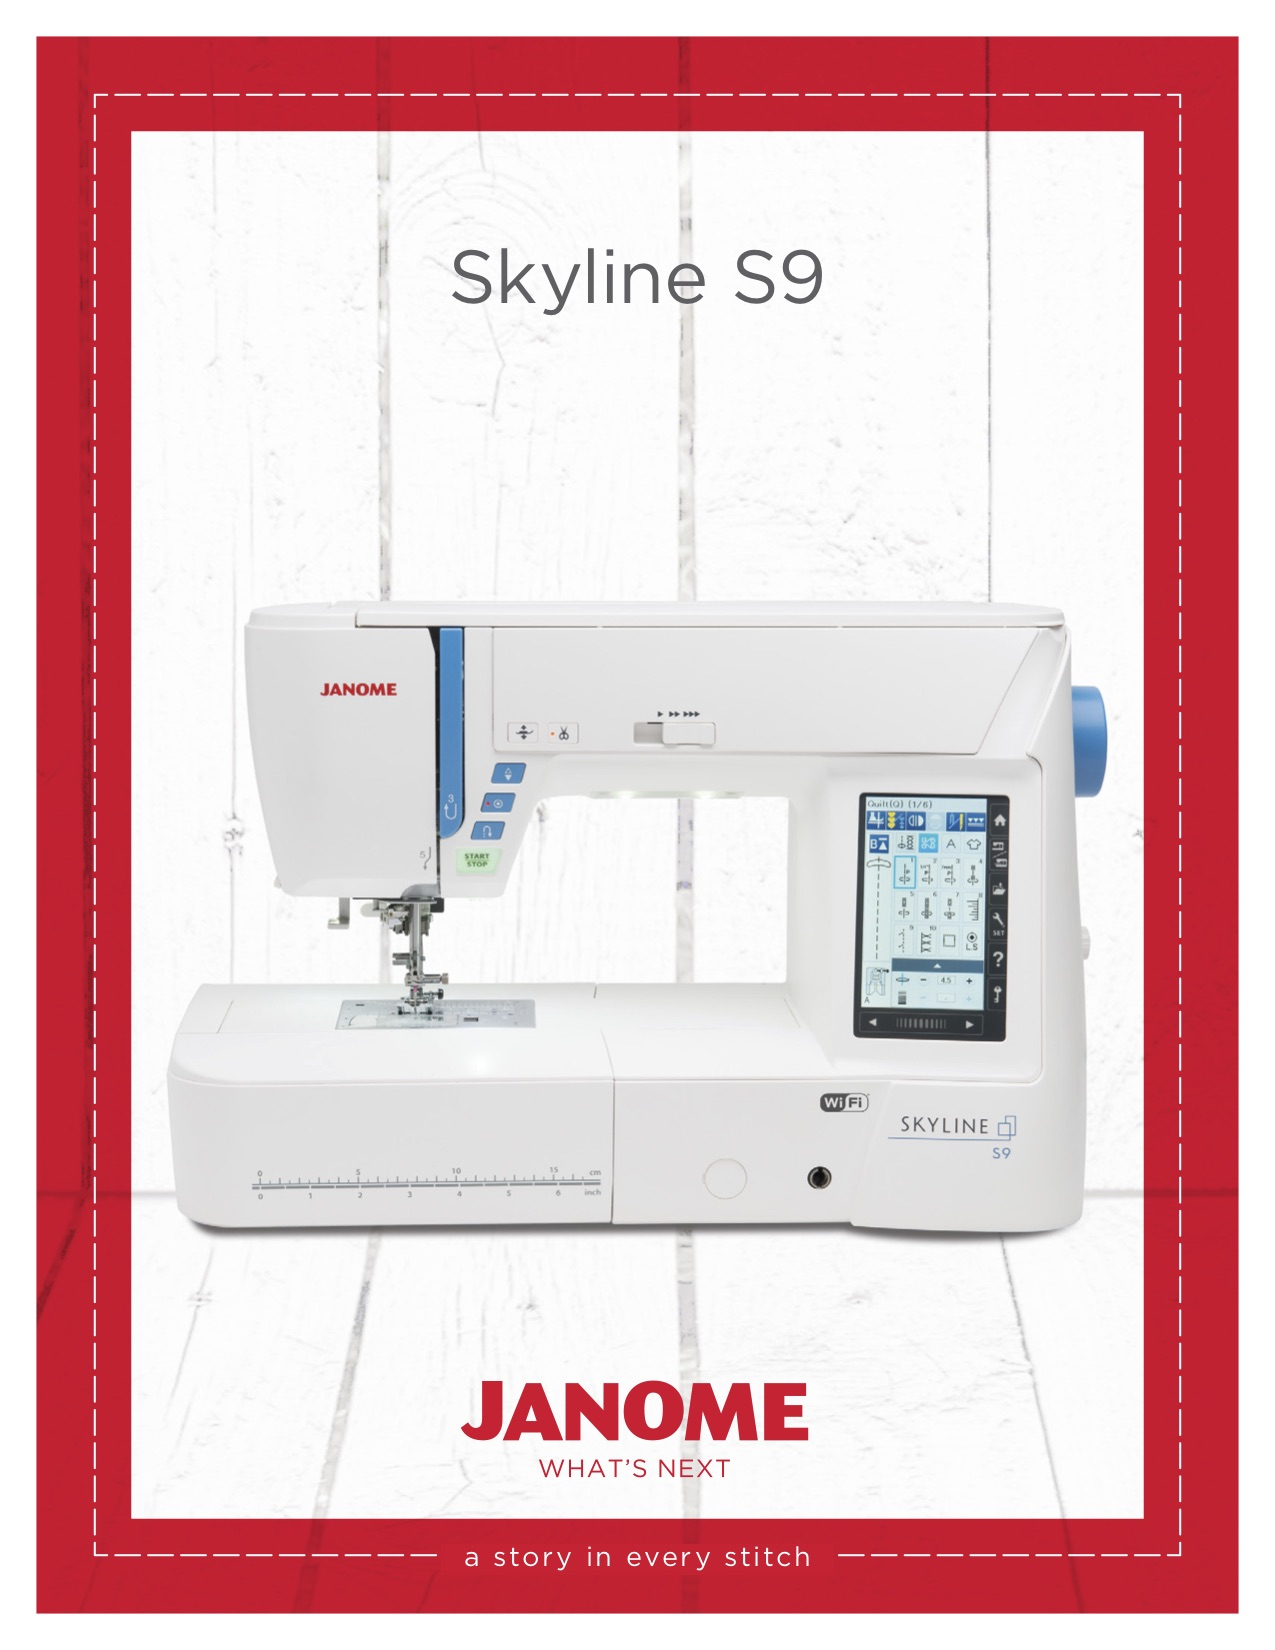 Skyline_S9 - JA Feature_Sheet.jpg